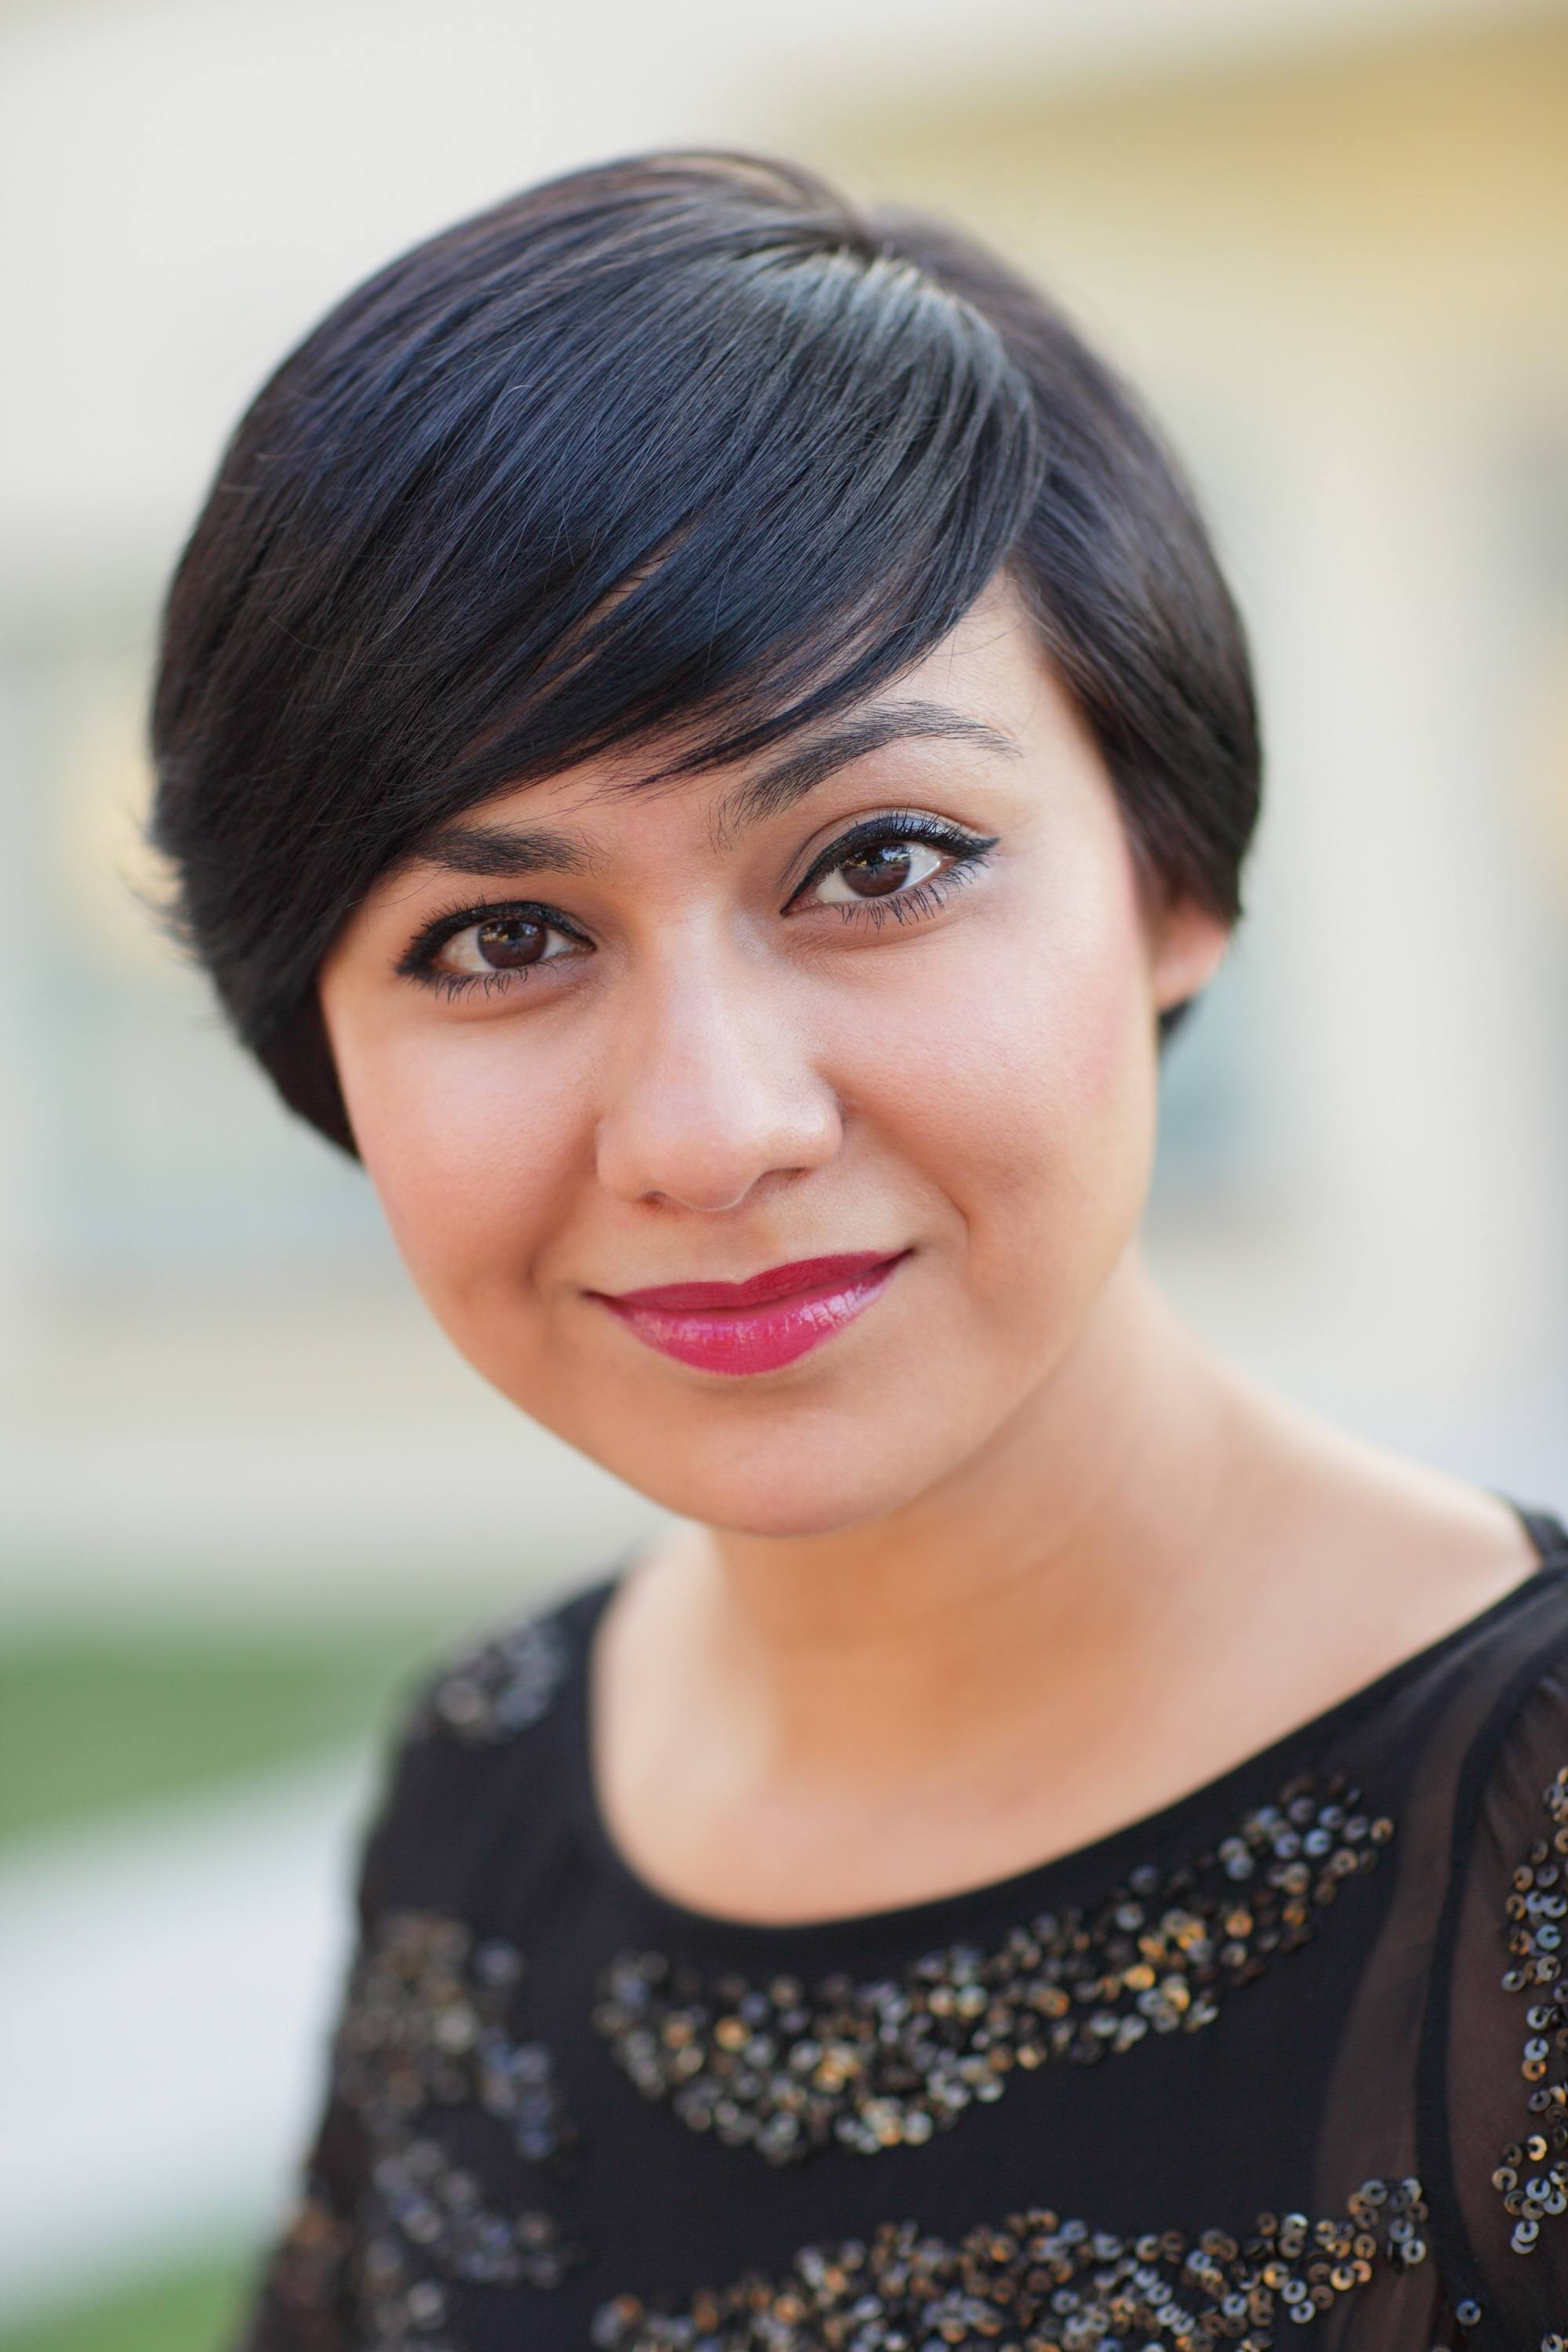 Short hair for round face: Closeup shot of a woman with short dark hair with side swept bangs